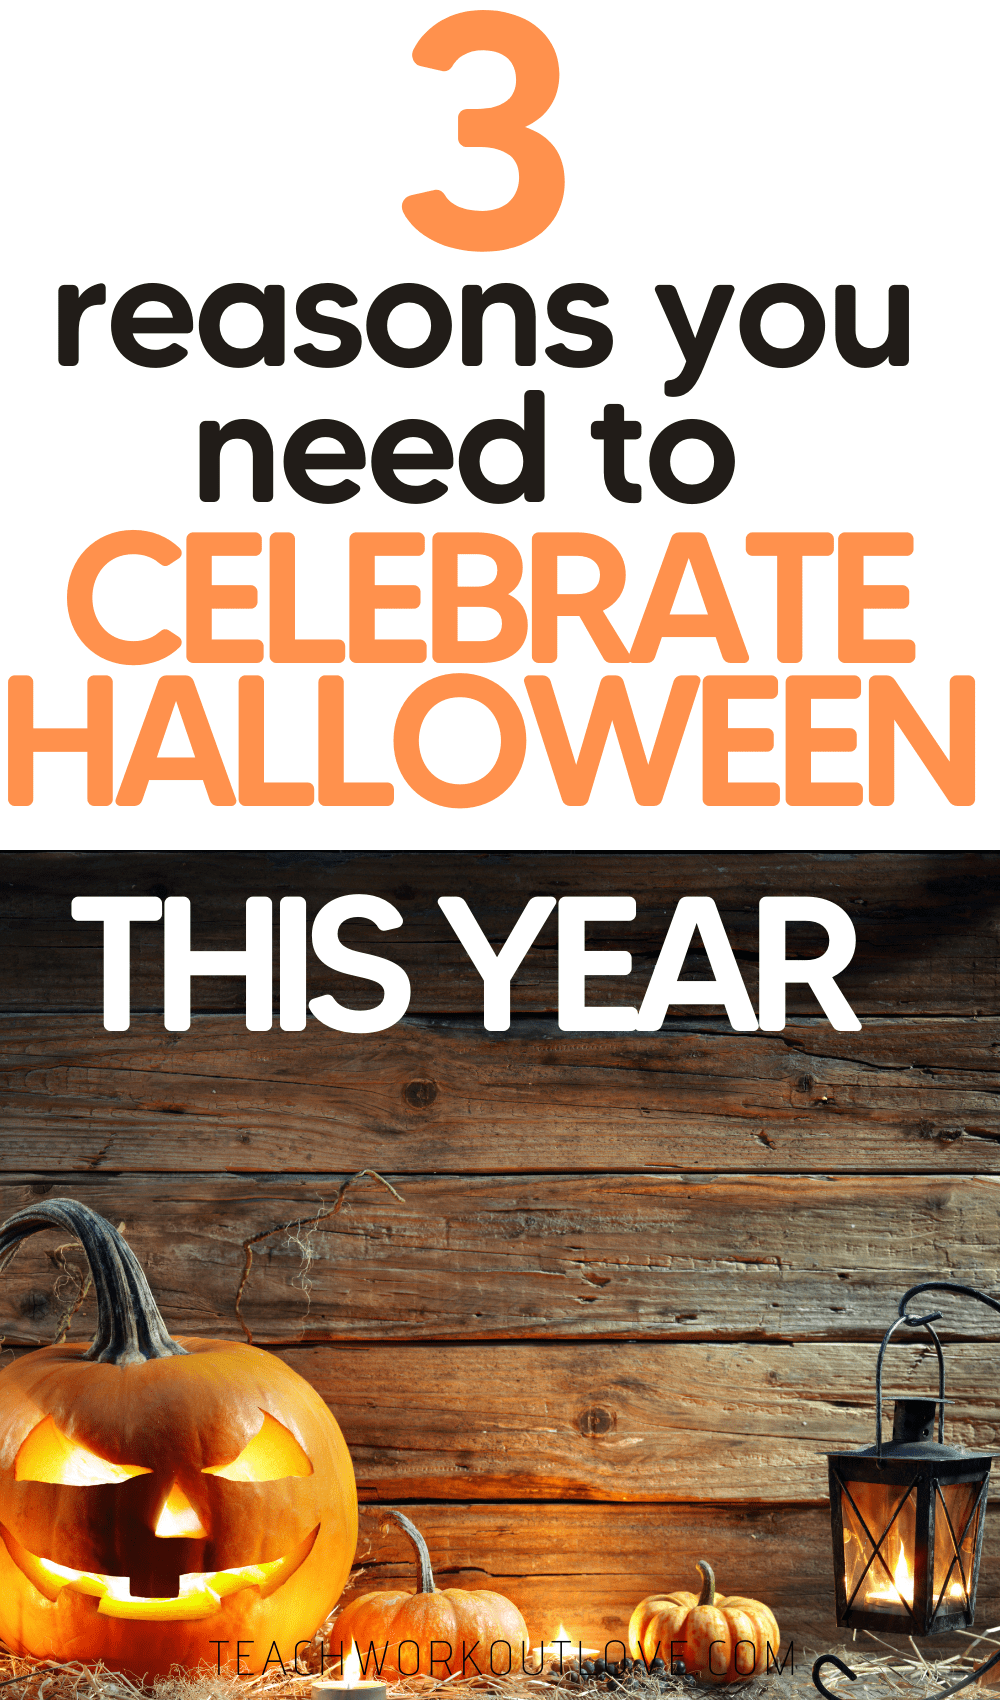 Halloween is quickly approaching. Most parents are unsure of celebrations. You need to celebrate Halloween this year, and here's why....